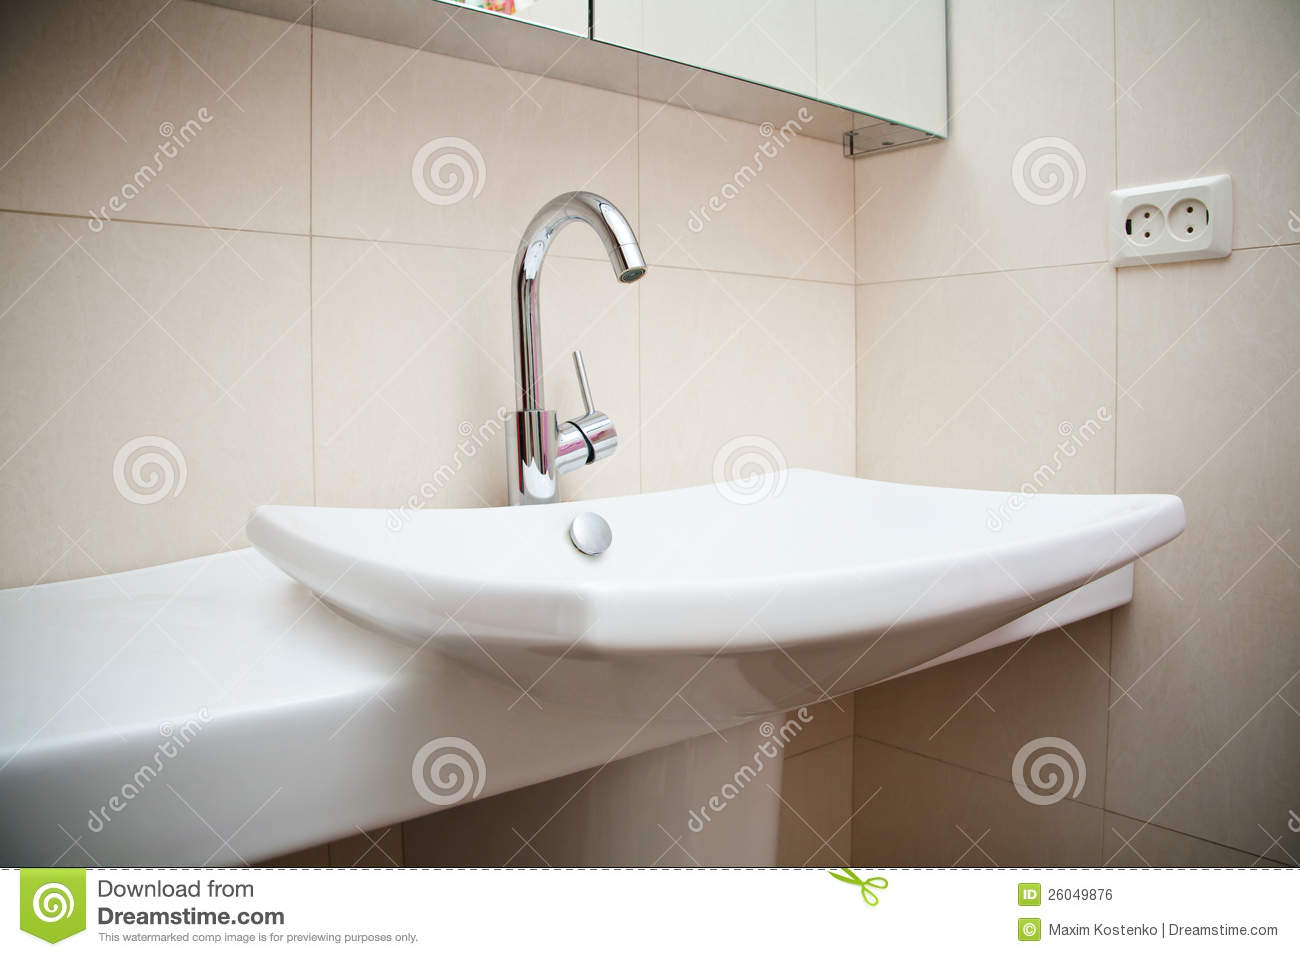 37 671 Modern Bathroom Sink Photos Free Royalty Free Stock Photos From Dreamstime